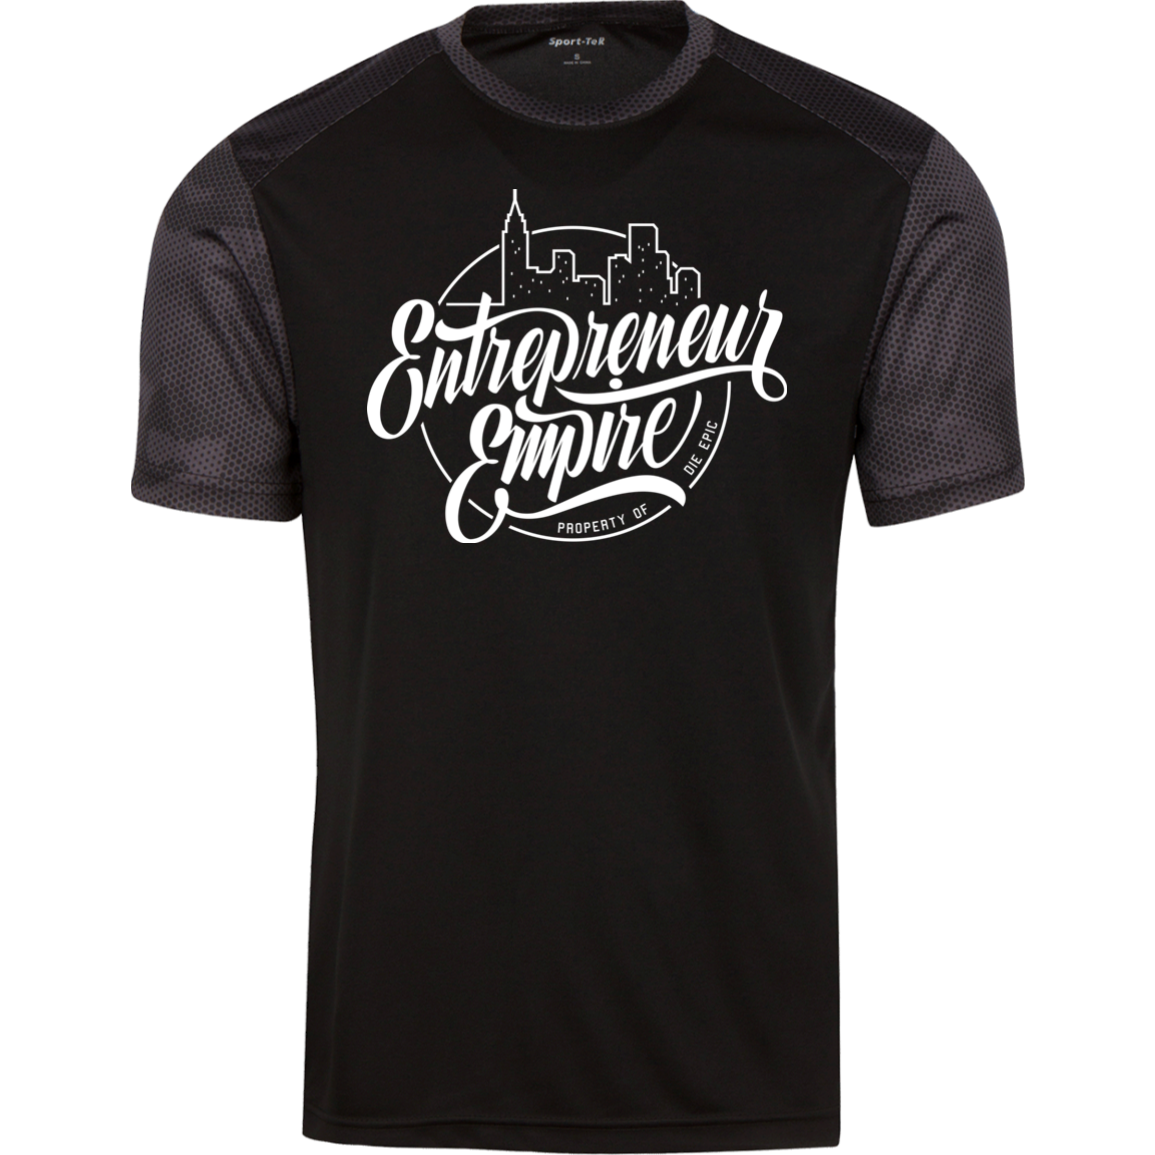 Entrepreneur Empire CamoHex Colorblock T-Shirt | Entrepreneur Apparel & Gear | Entrepreneur Empire